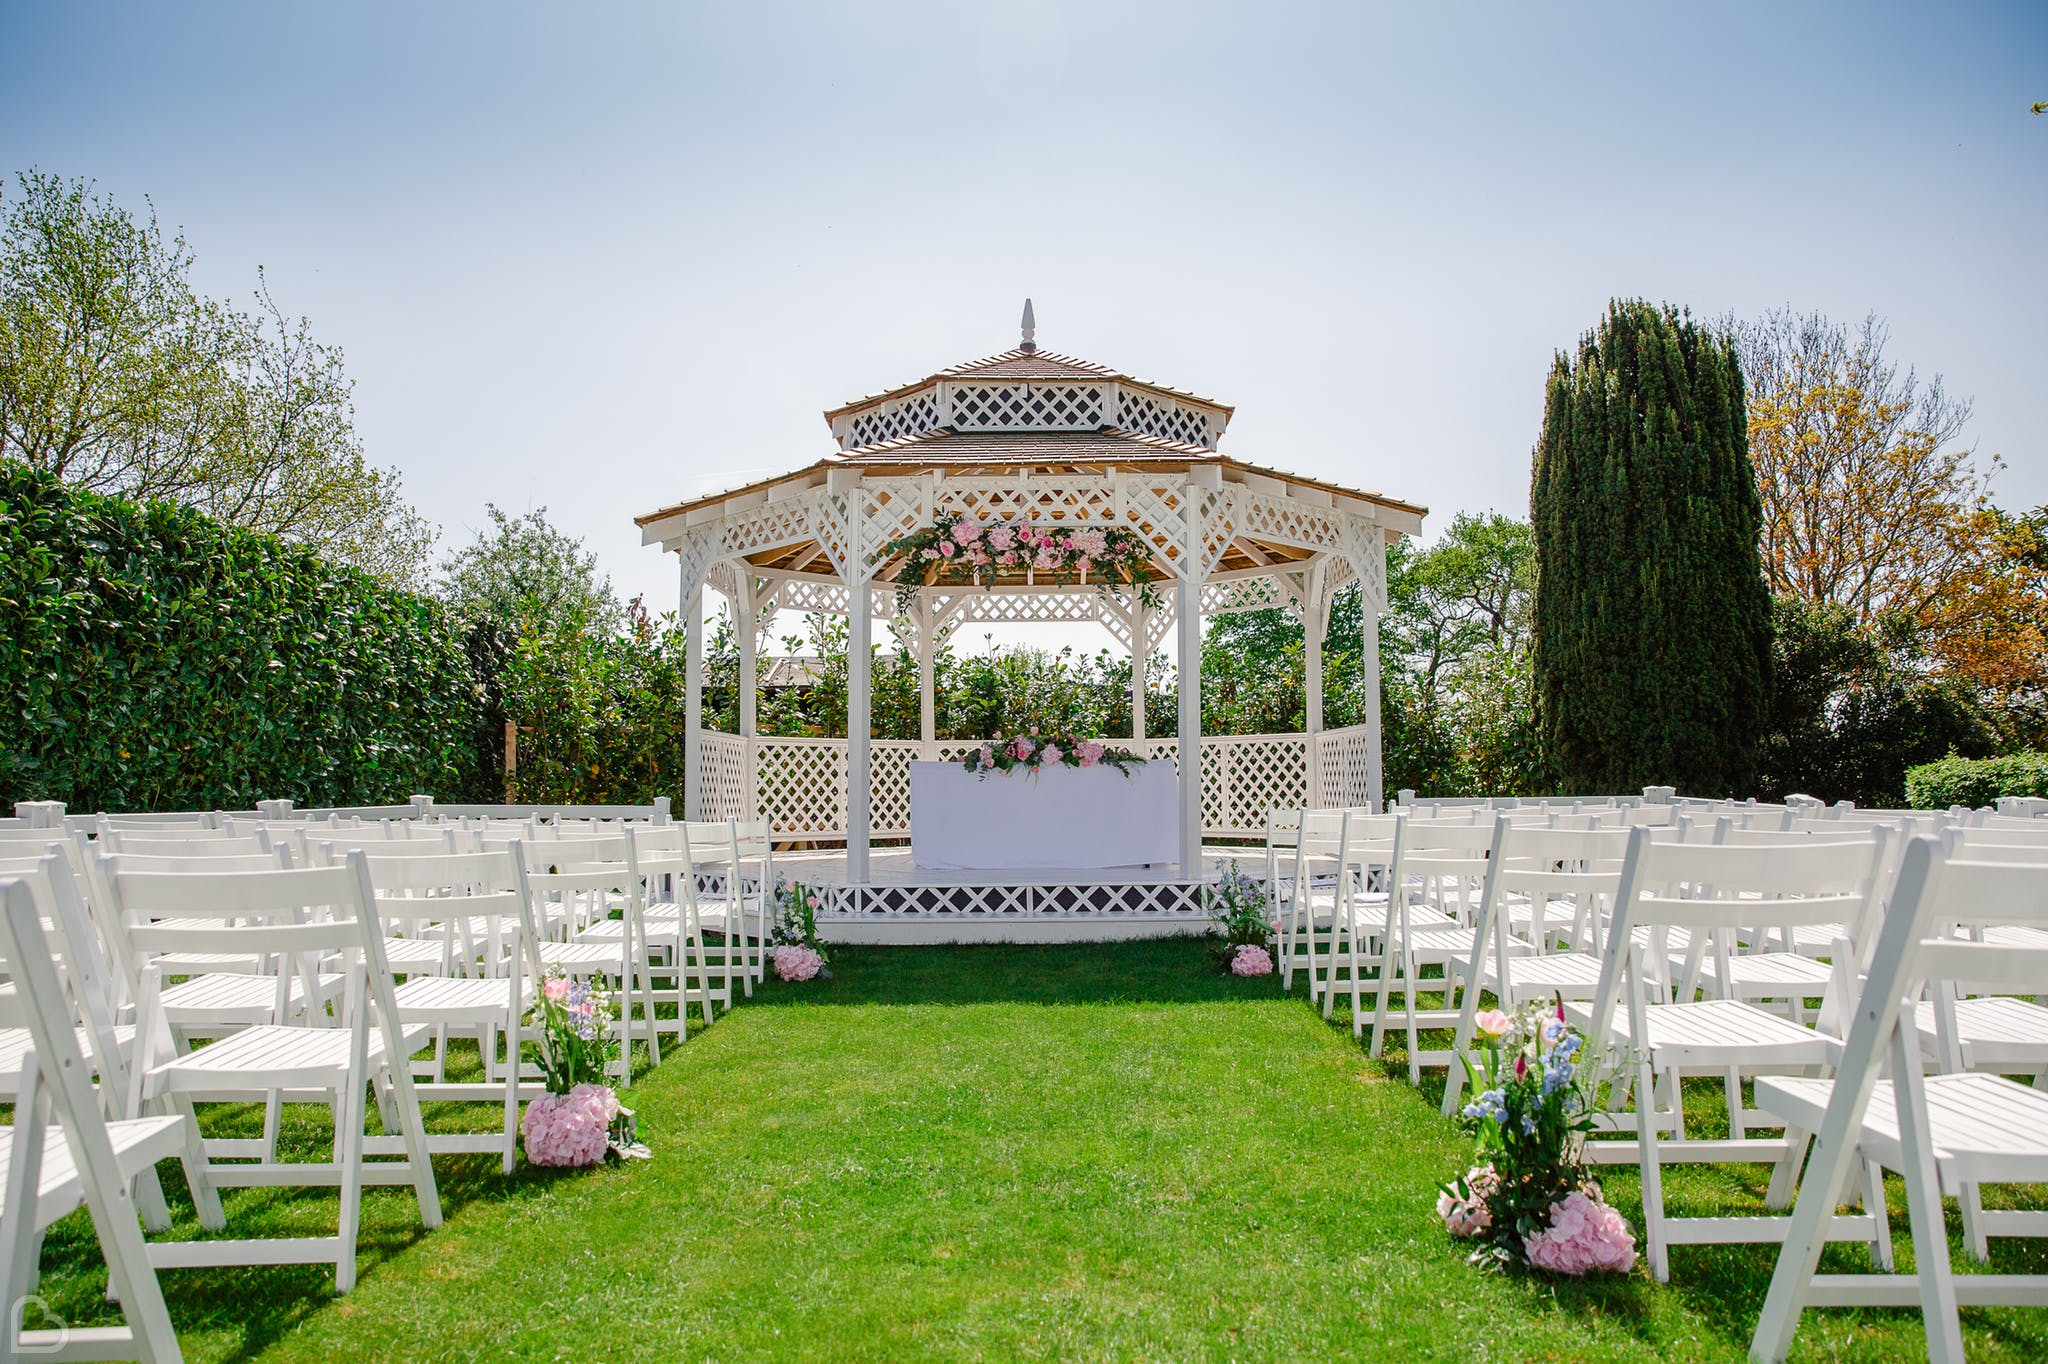 Moor Hall gazeebo